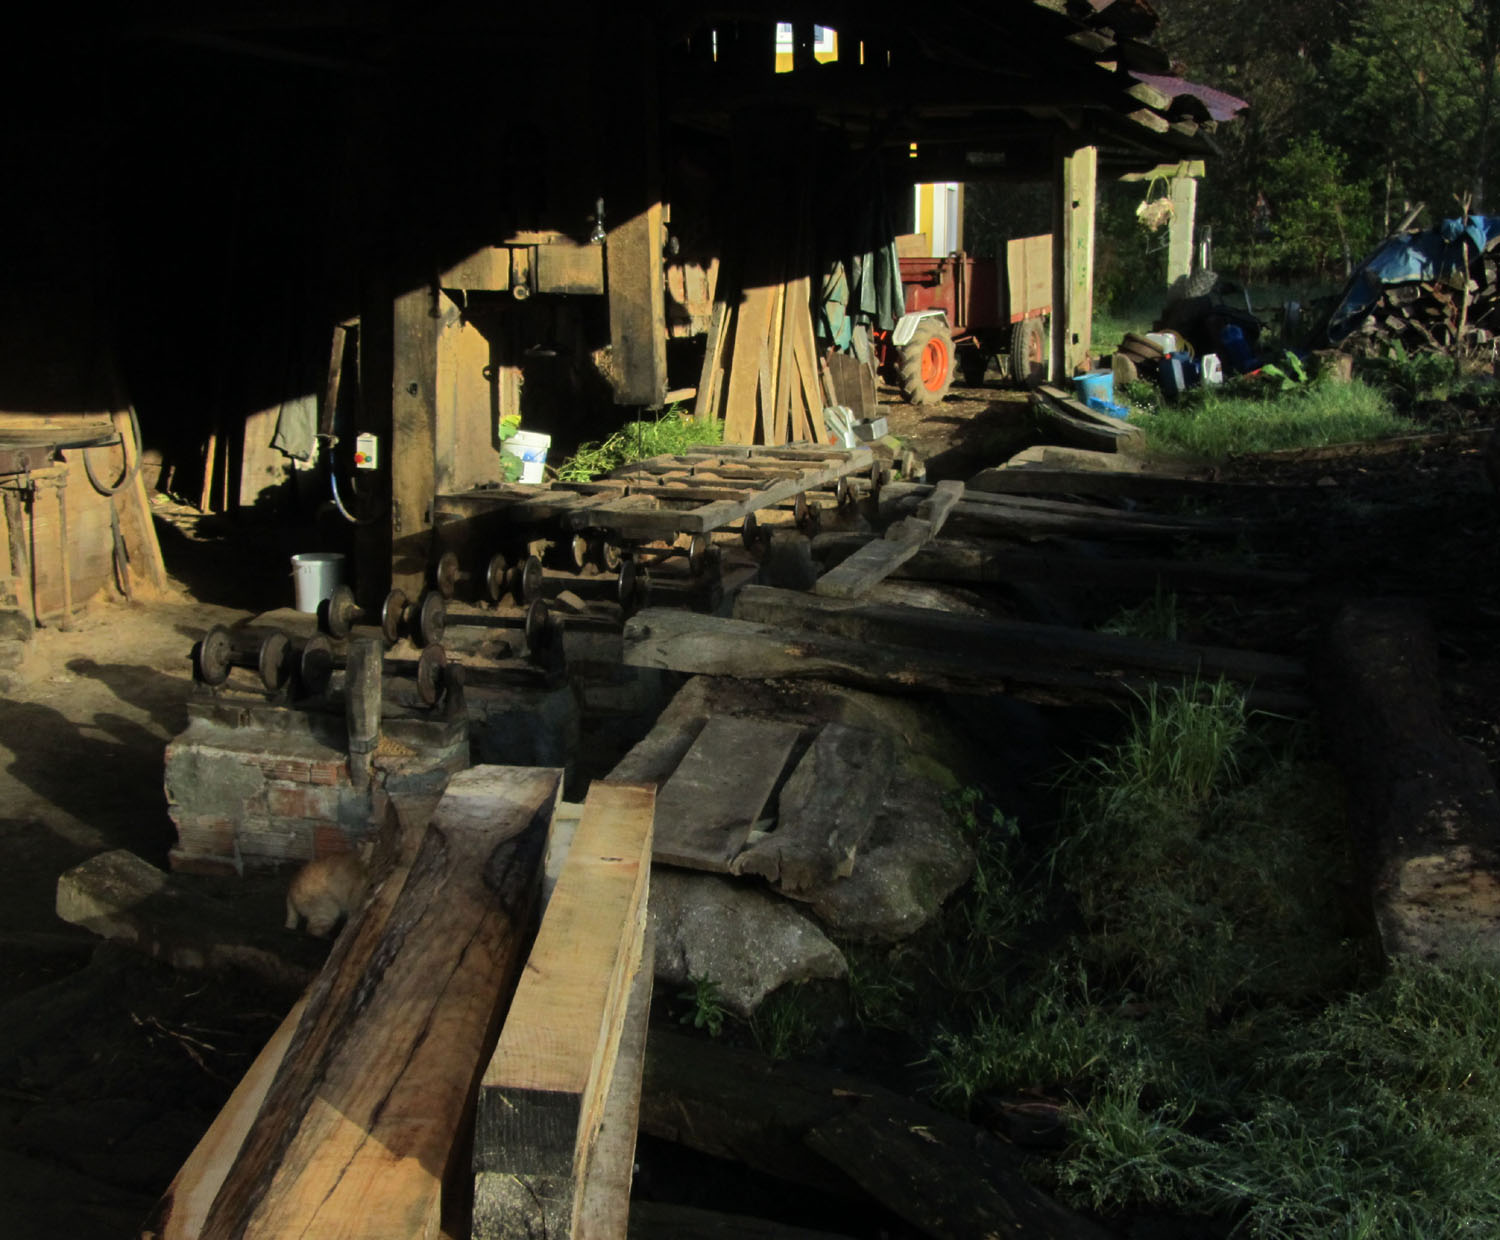 Camino-De-Santiago-Sights-And-Scenery-Sawmill